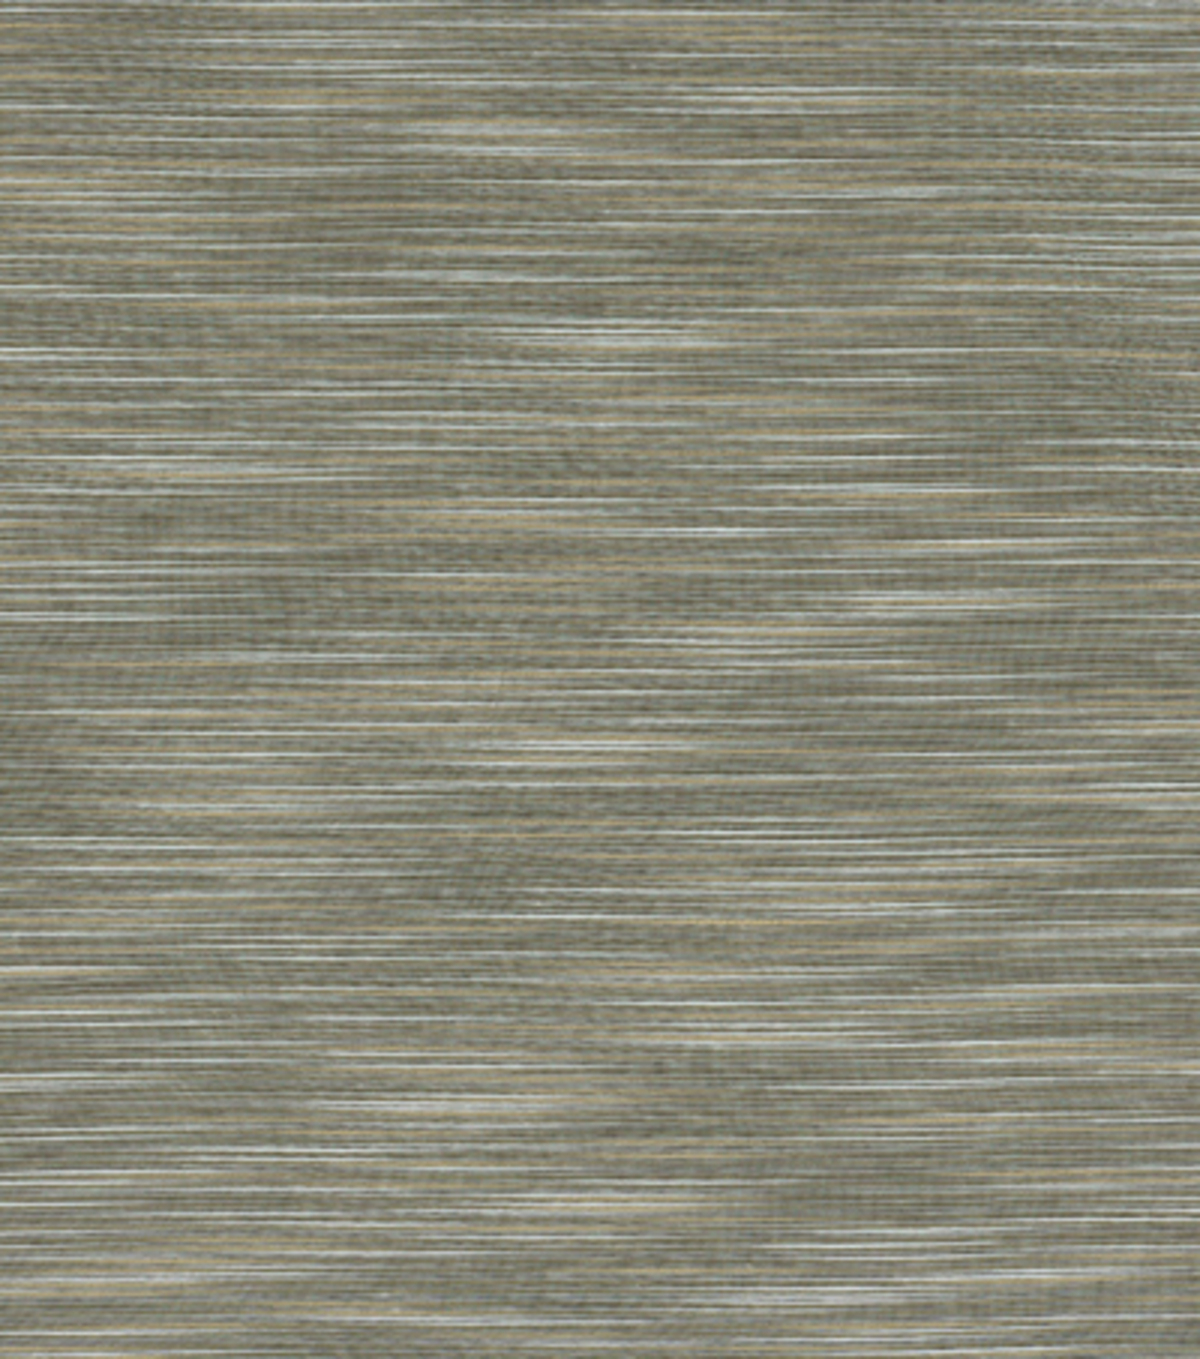 Home Decor 8\u0022x8\u0022 Fabric Swatch-Richloom Studio Zemire Flax